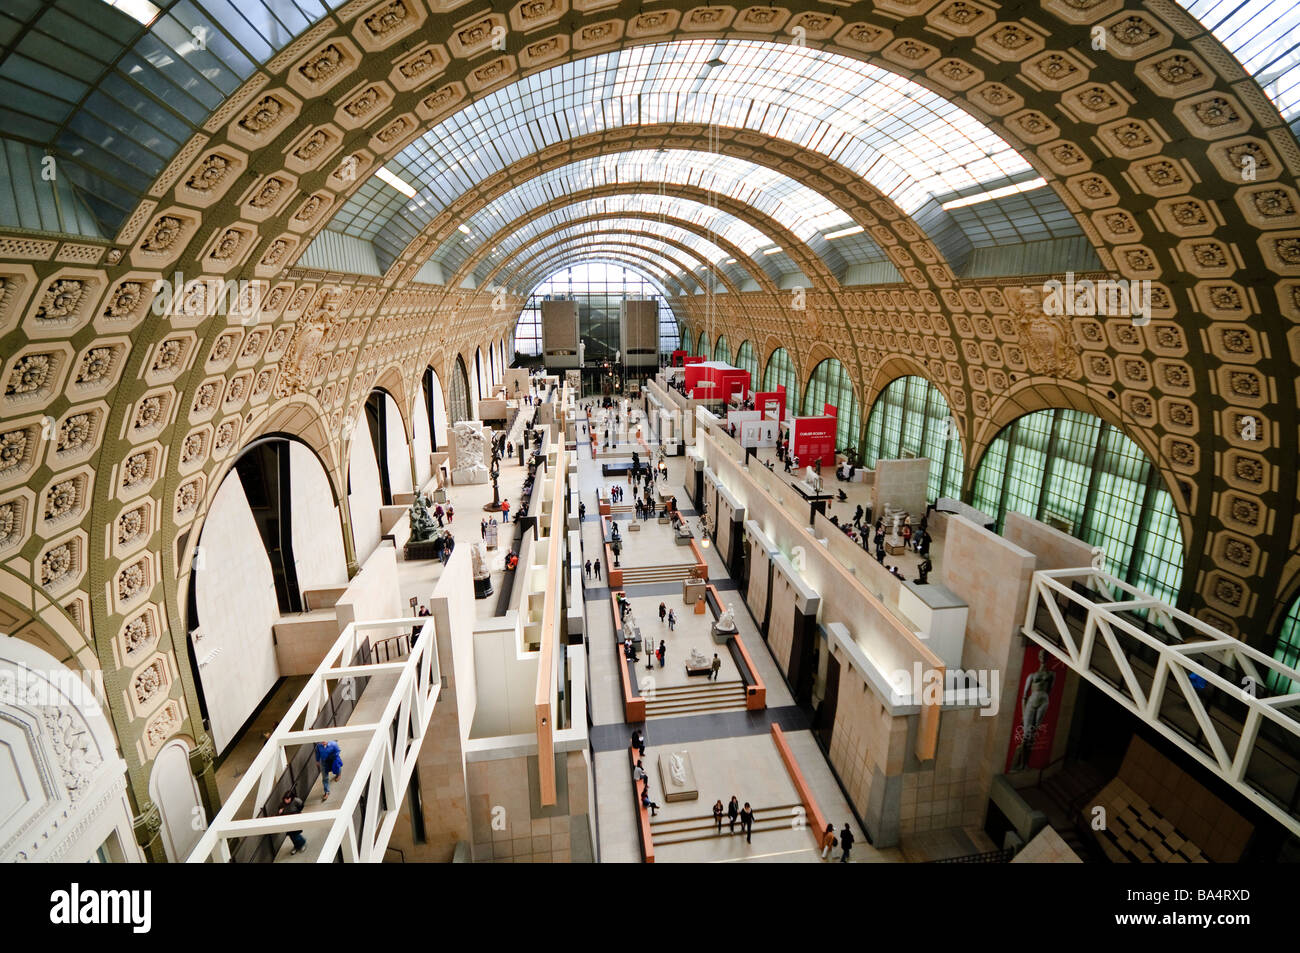 PARIS, France - Main hall of Musée d'Orsay, formerly a train station (Gare d'Orsay) and now an art - Stock Image